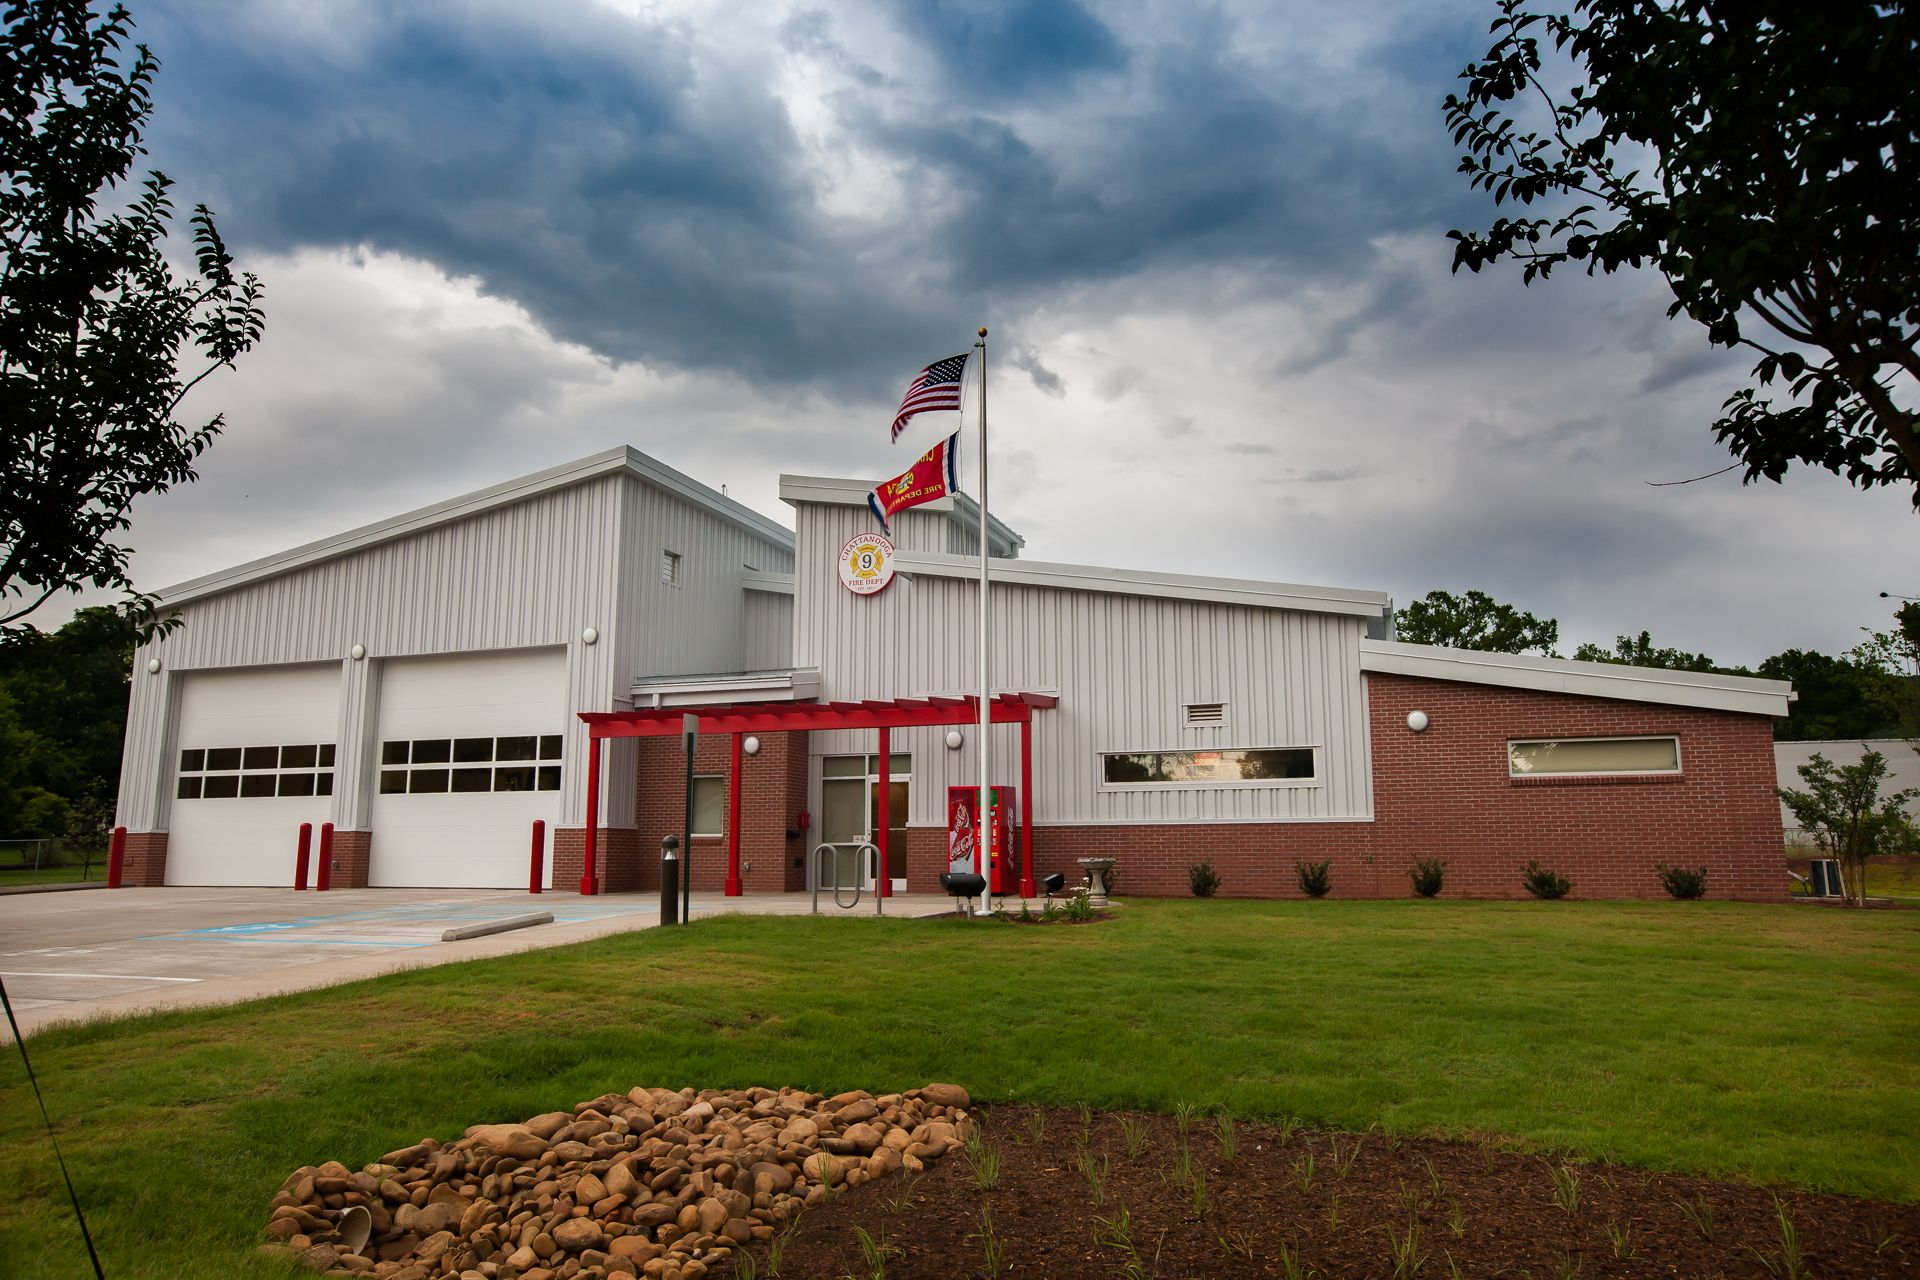 Chattanooga Fire Station #9